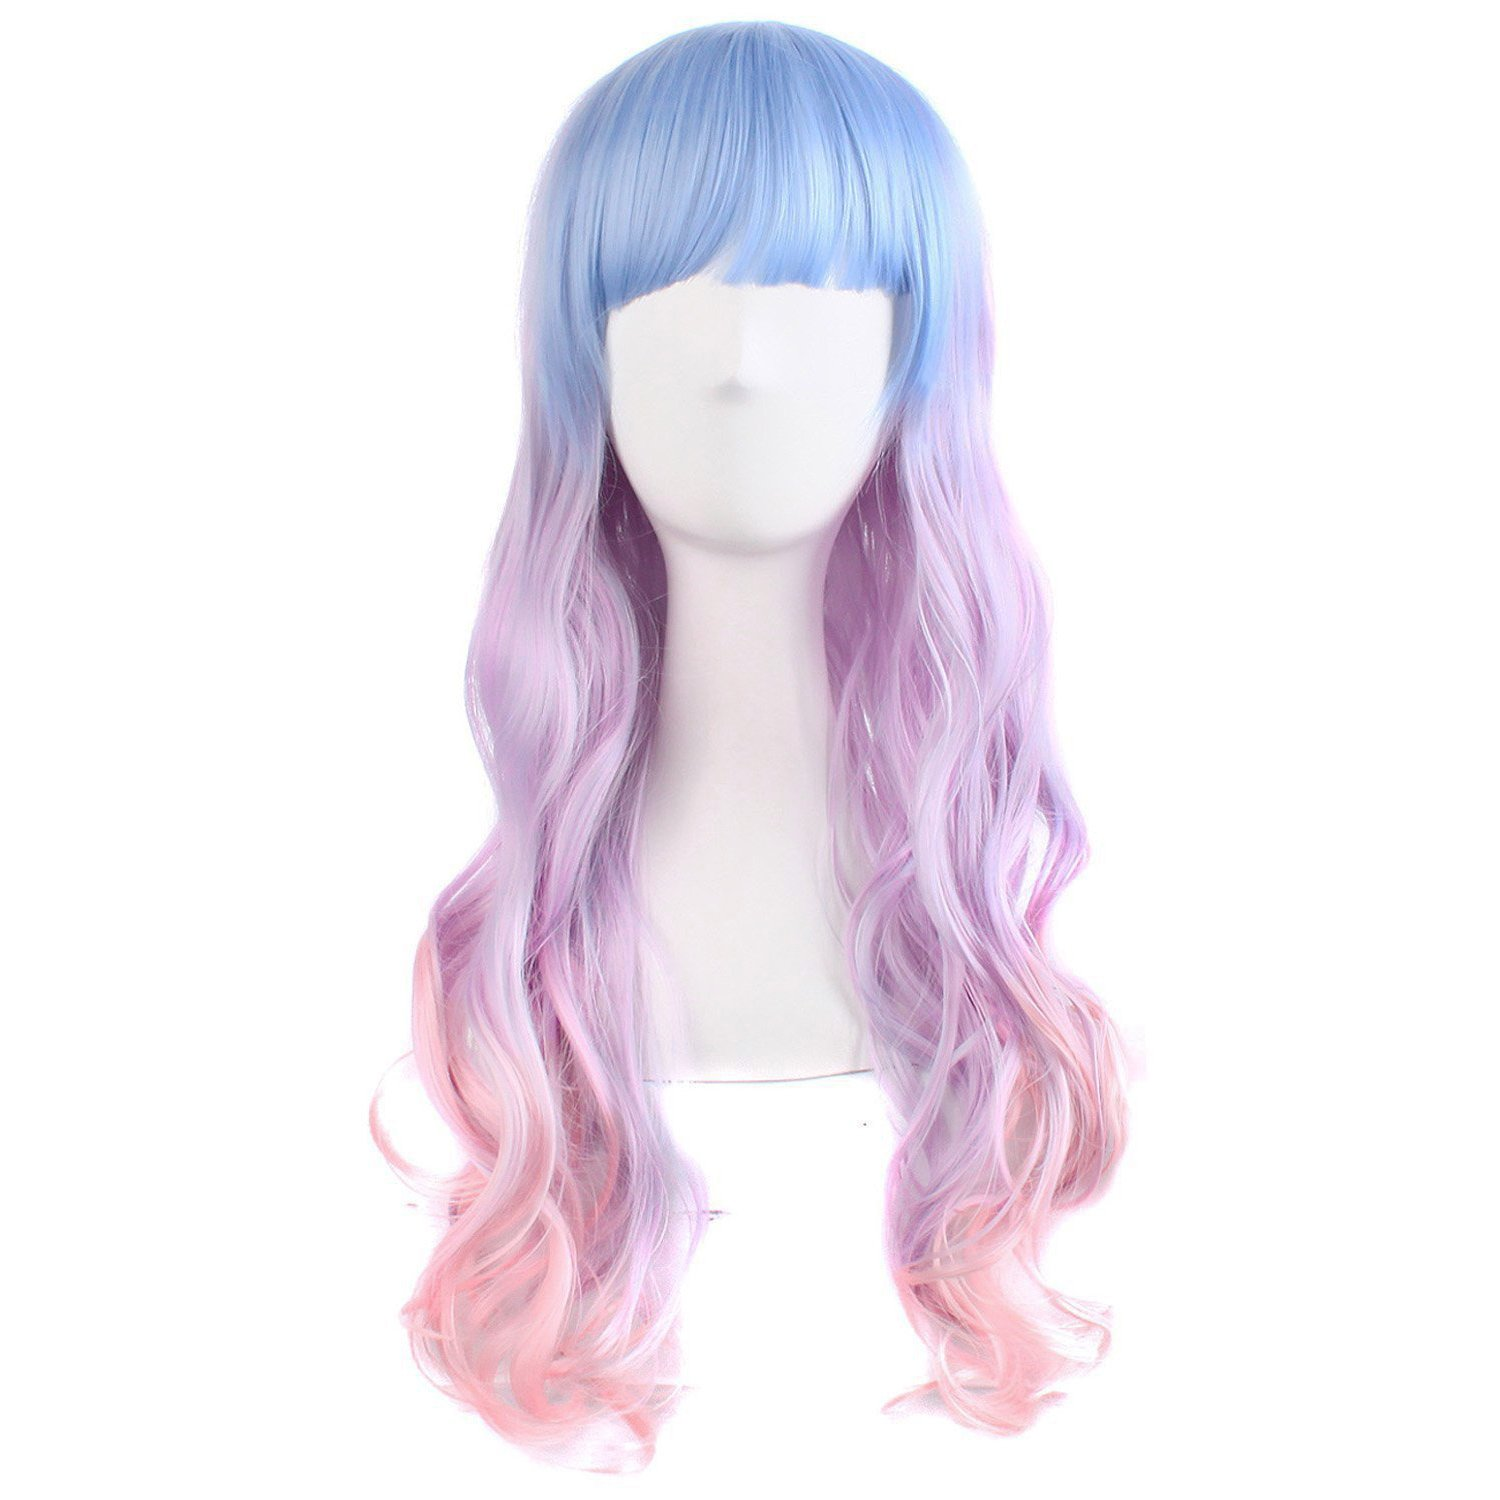 MapofBeauty 28'' Wavy Multi-Color Lolita Cosplay Wig Party Wig (Light Blue/Light Purple/Pink) by MapofBeauty